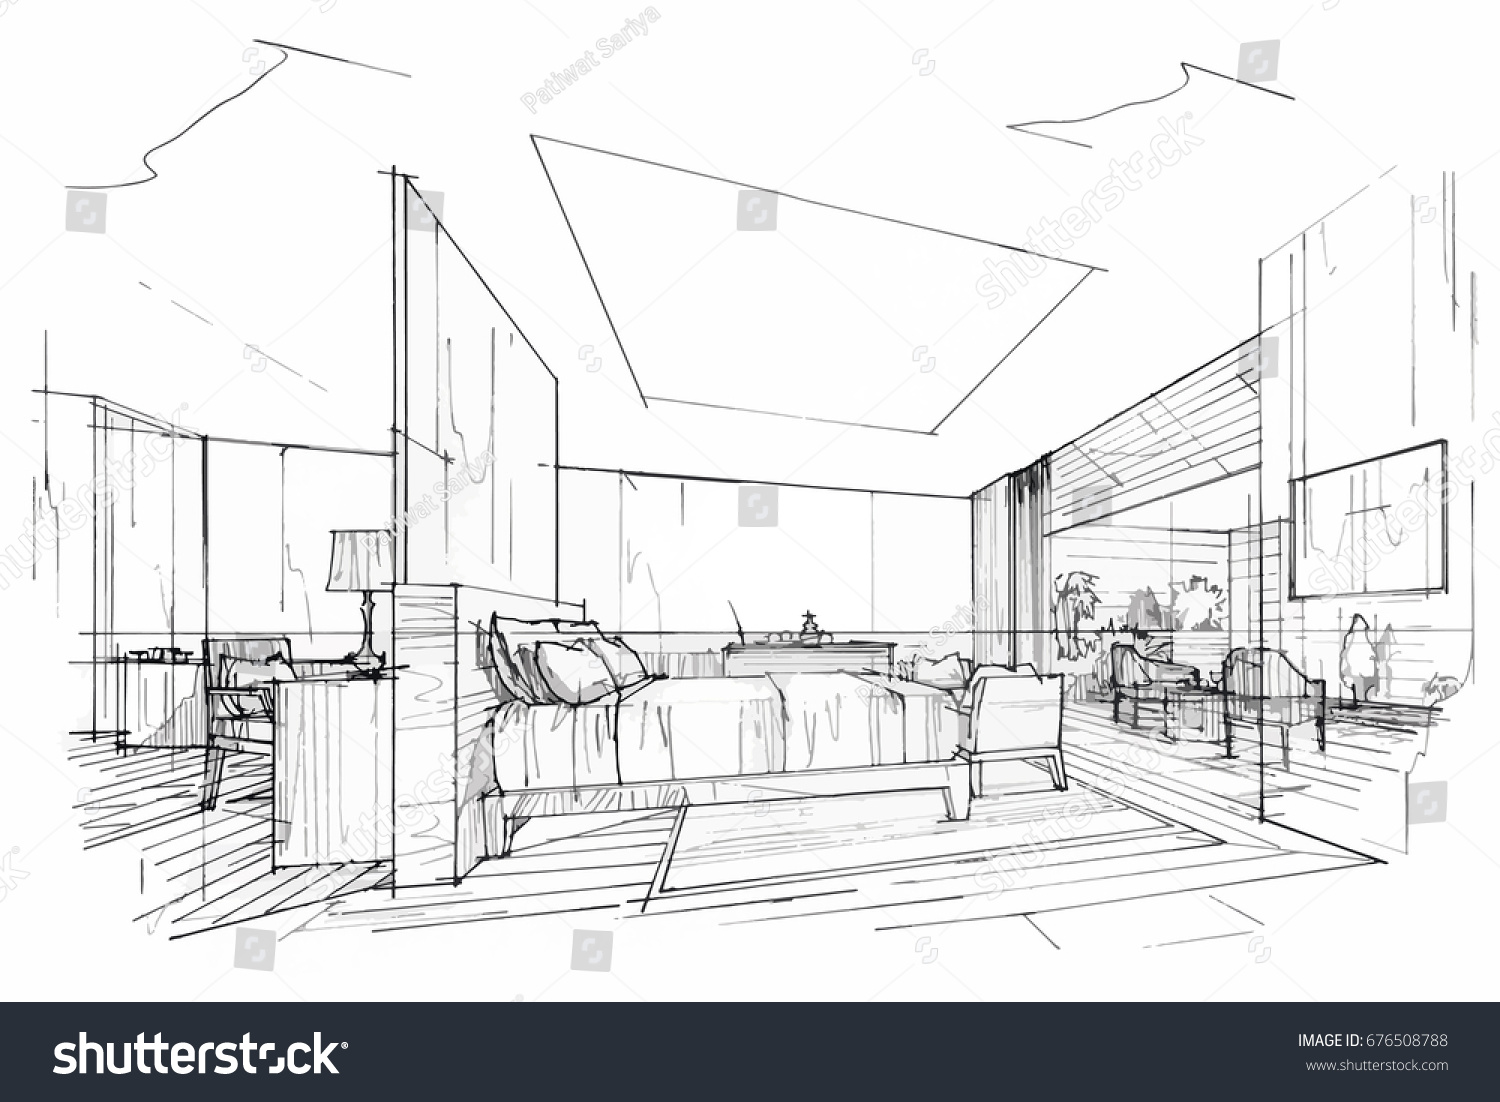 Interior Design Drawings Perspective. Interior Design Drawings Perspective C